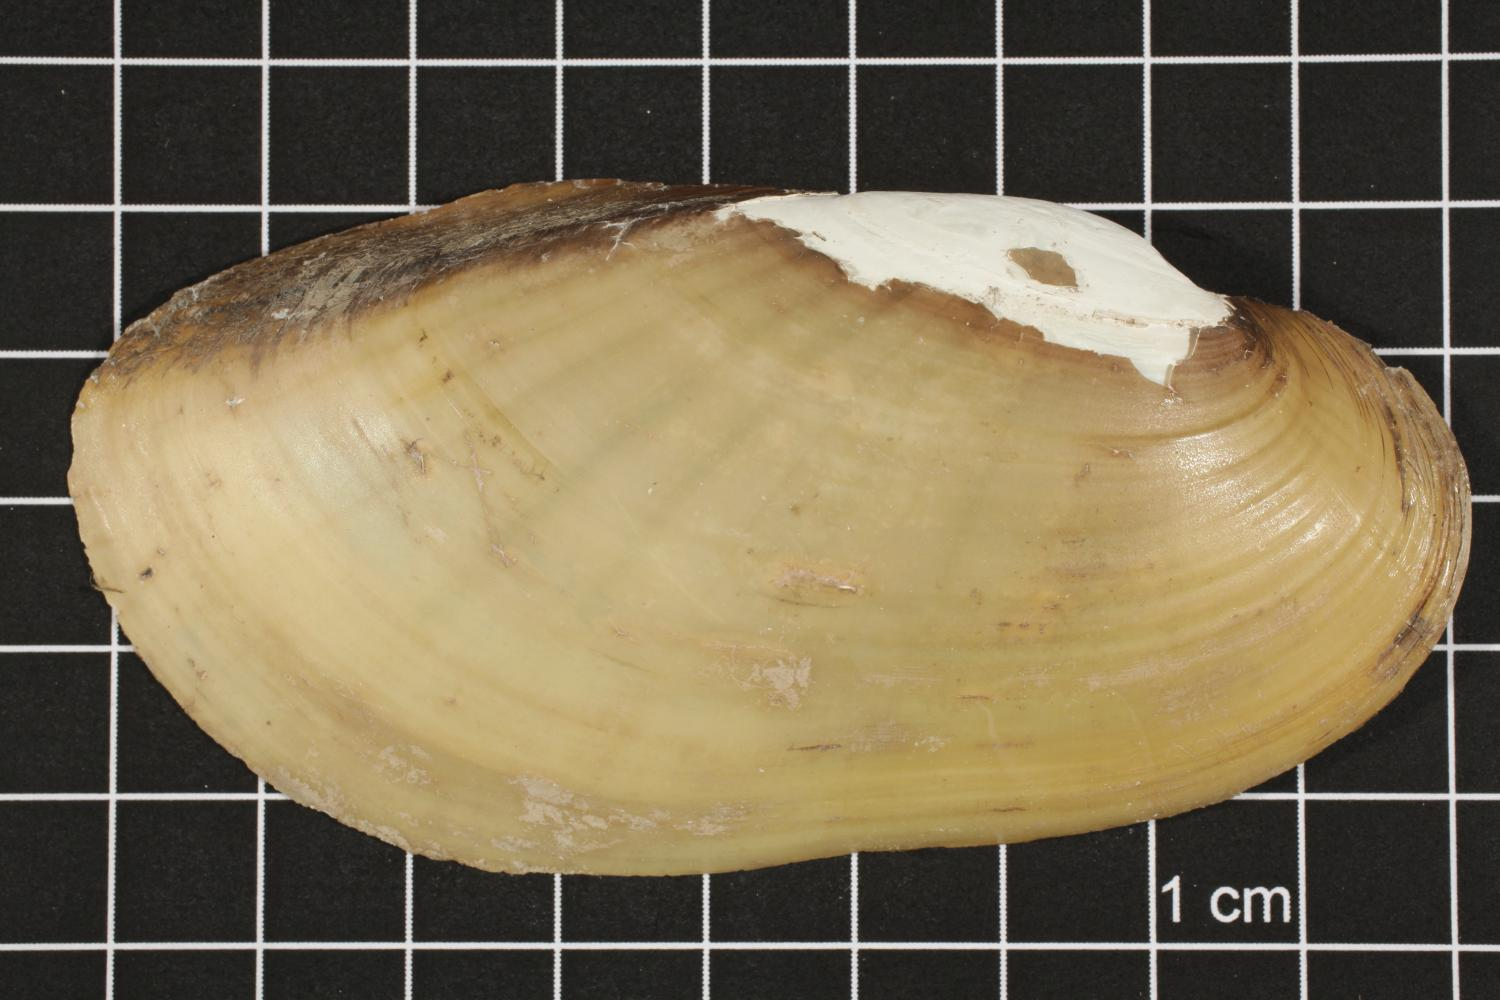 Lampsilis teres, Specimen #427                                                                                                      [Sequence #]: 1 of 4